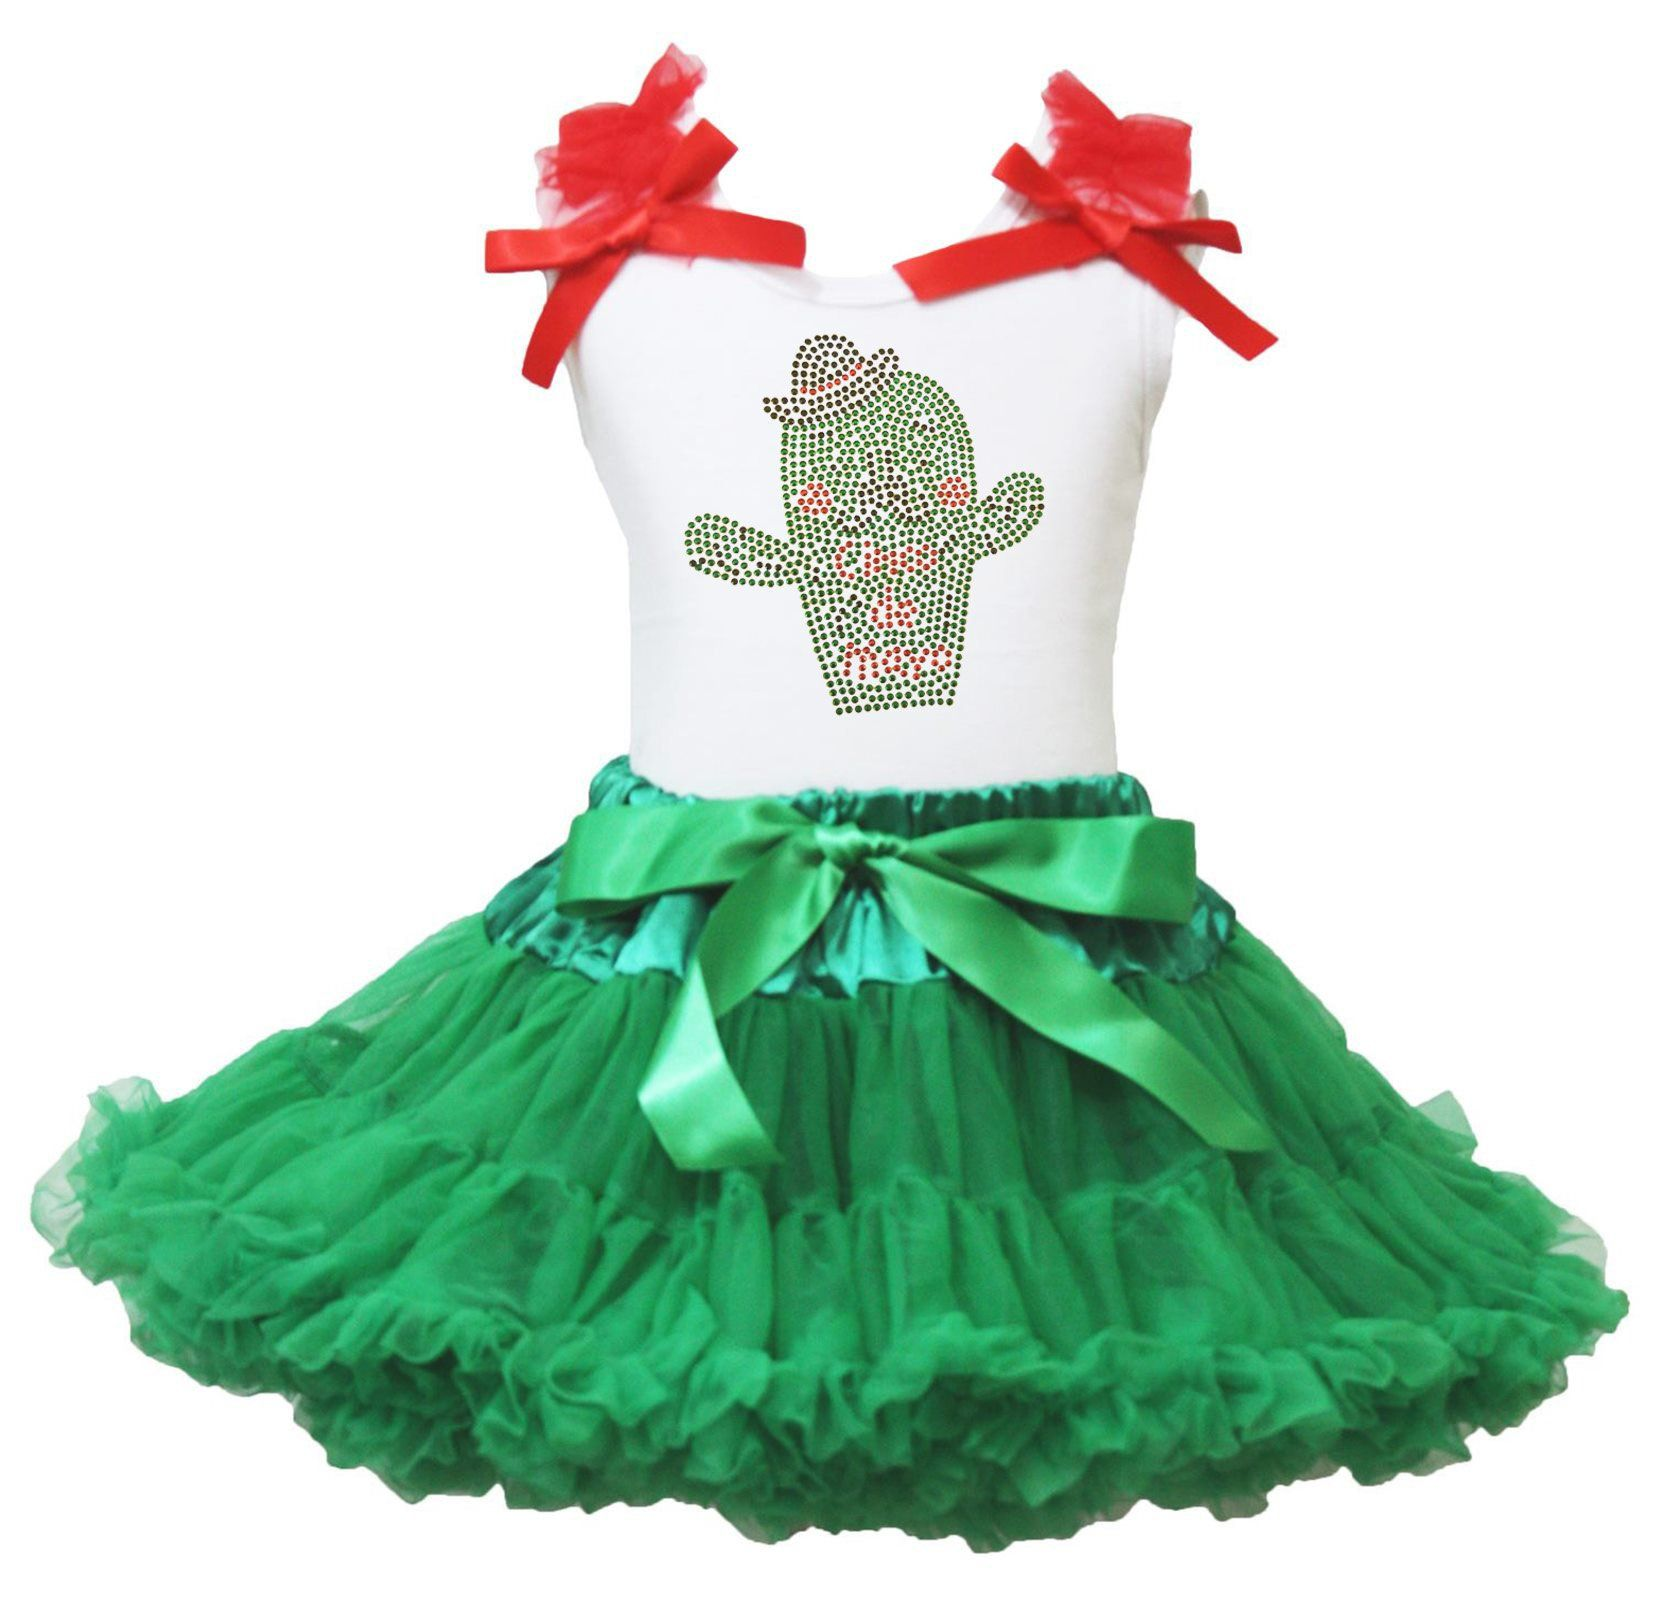 St Patrick's Day Dress I Love Clover White L/s Shirt Green Petal Skirt Set 1-8y Girls Clothing Sets